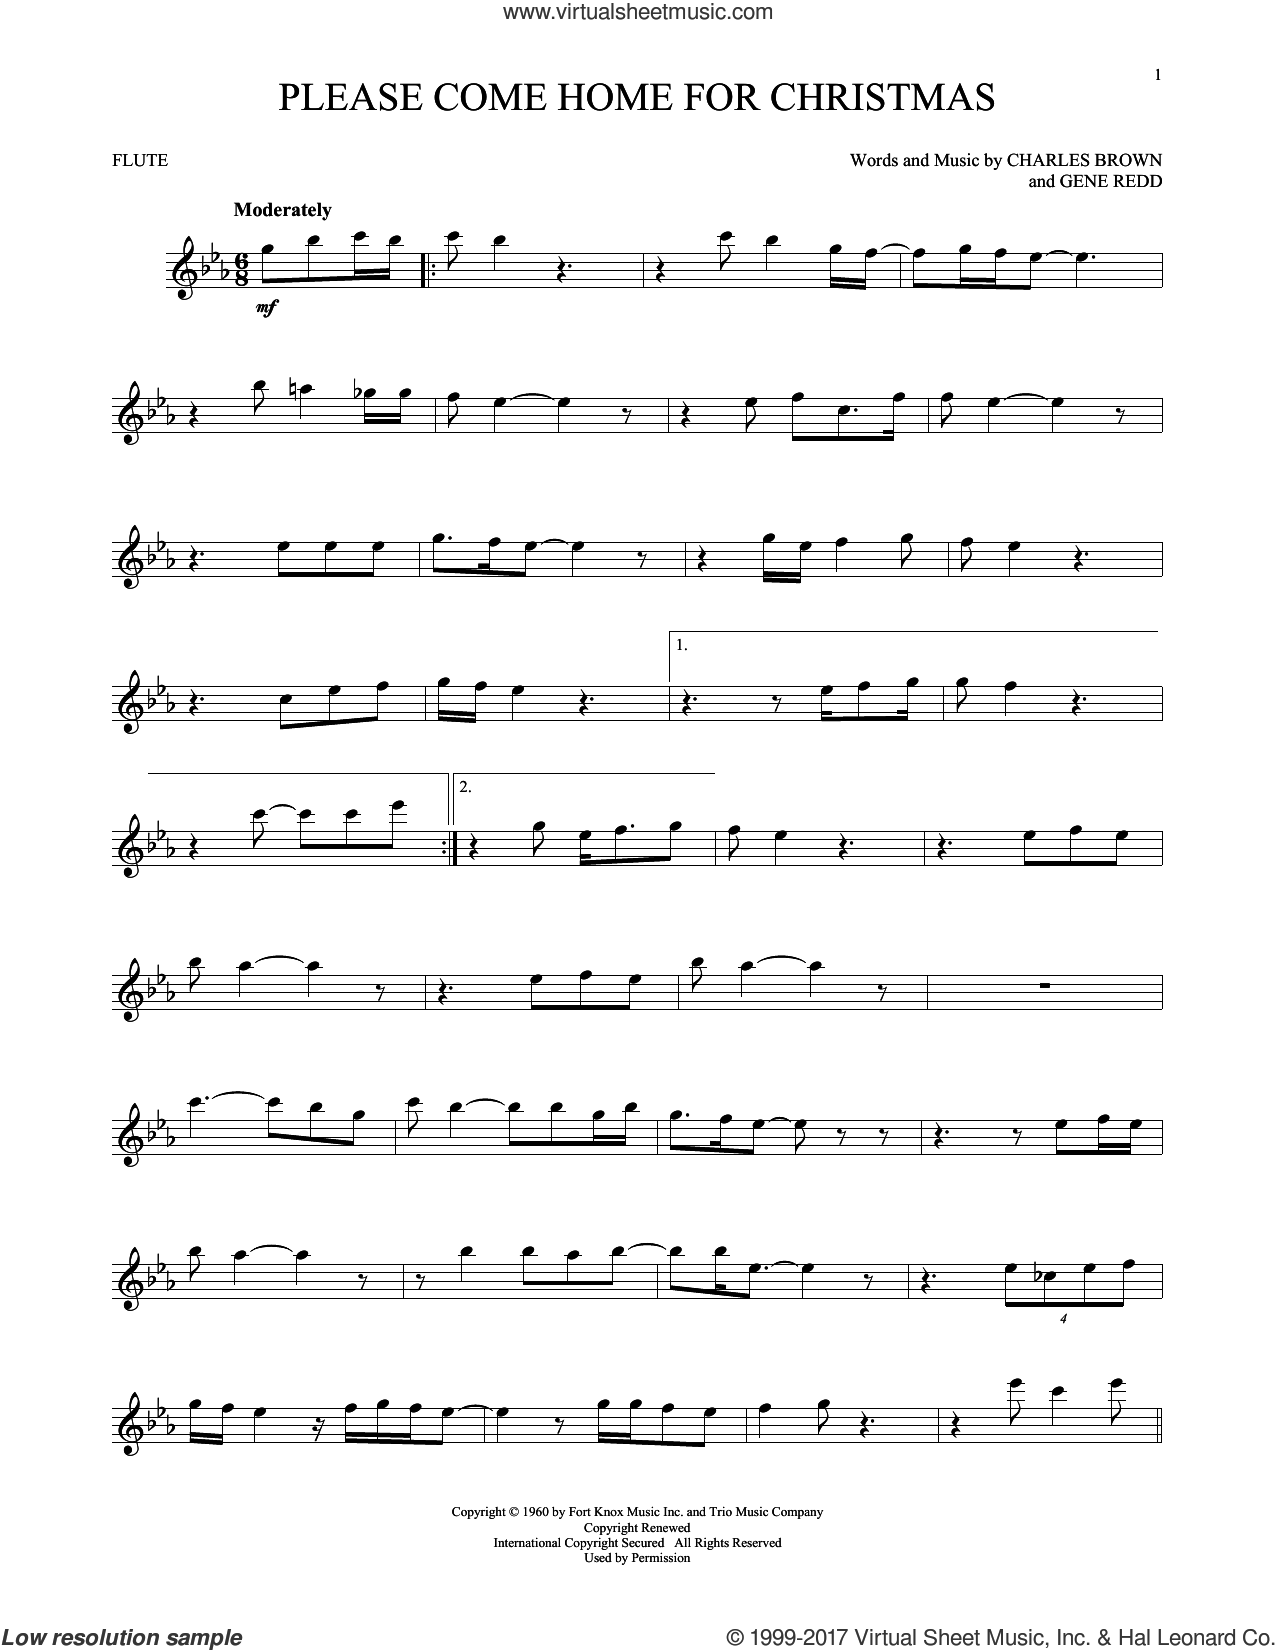 Please Come Home For Christmas sheet music for flute solo by Charles Brown, Josh Gracin, Martina McBride and Willie Nelson, intermediate. Score Image Preview.